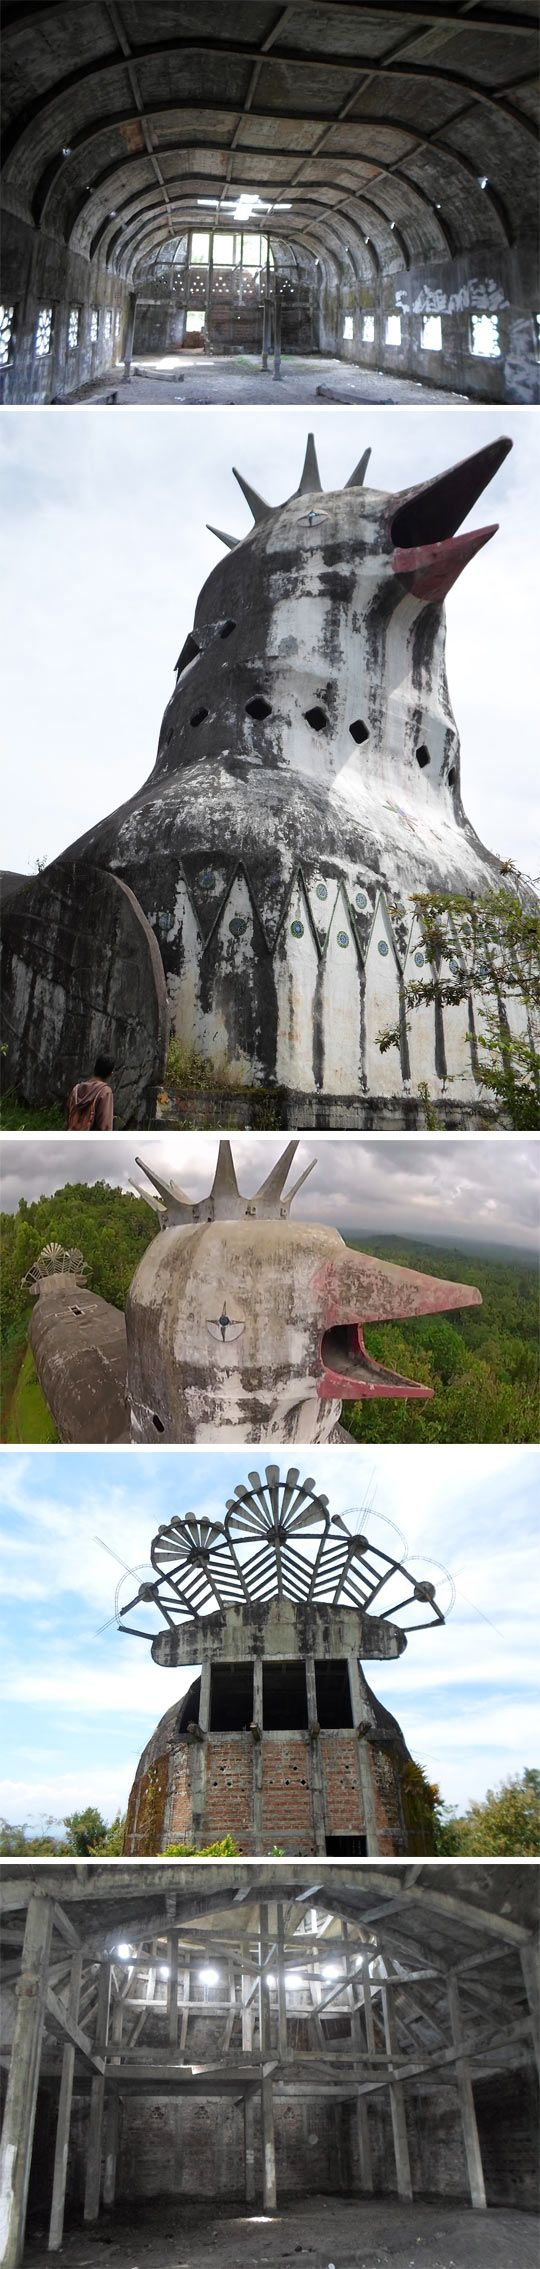 The Chicken Church in Indonesia